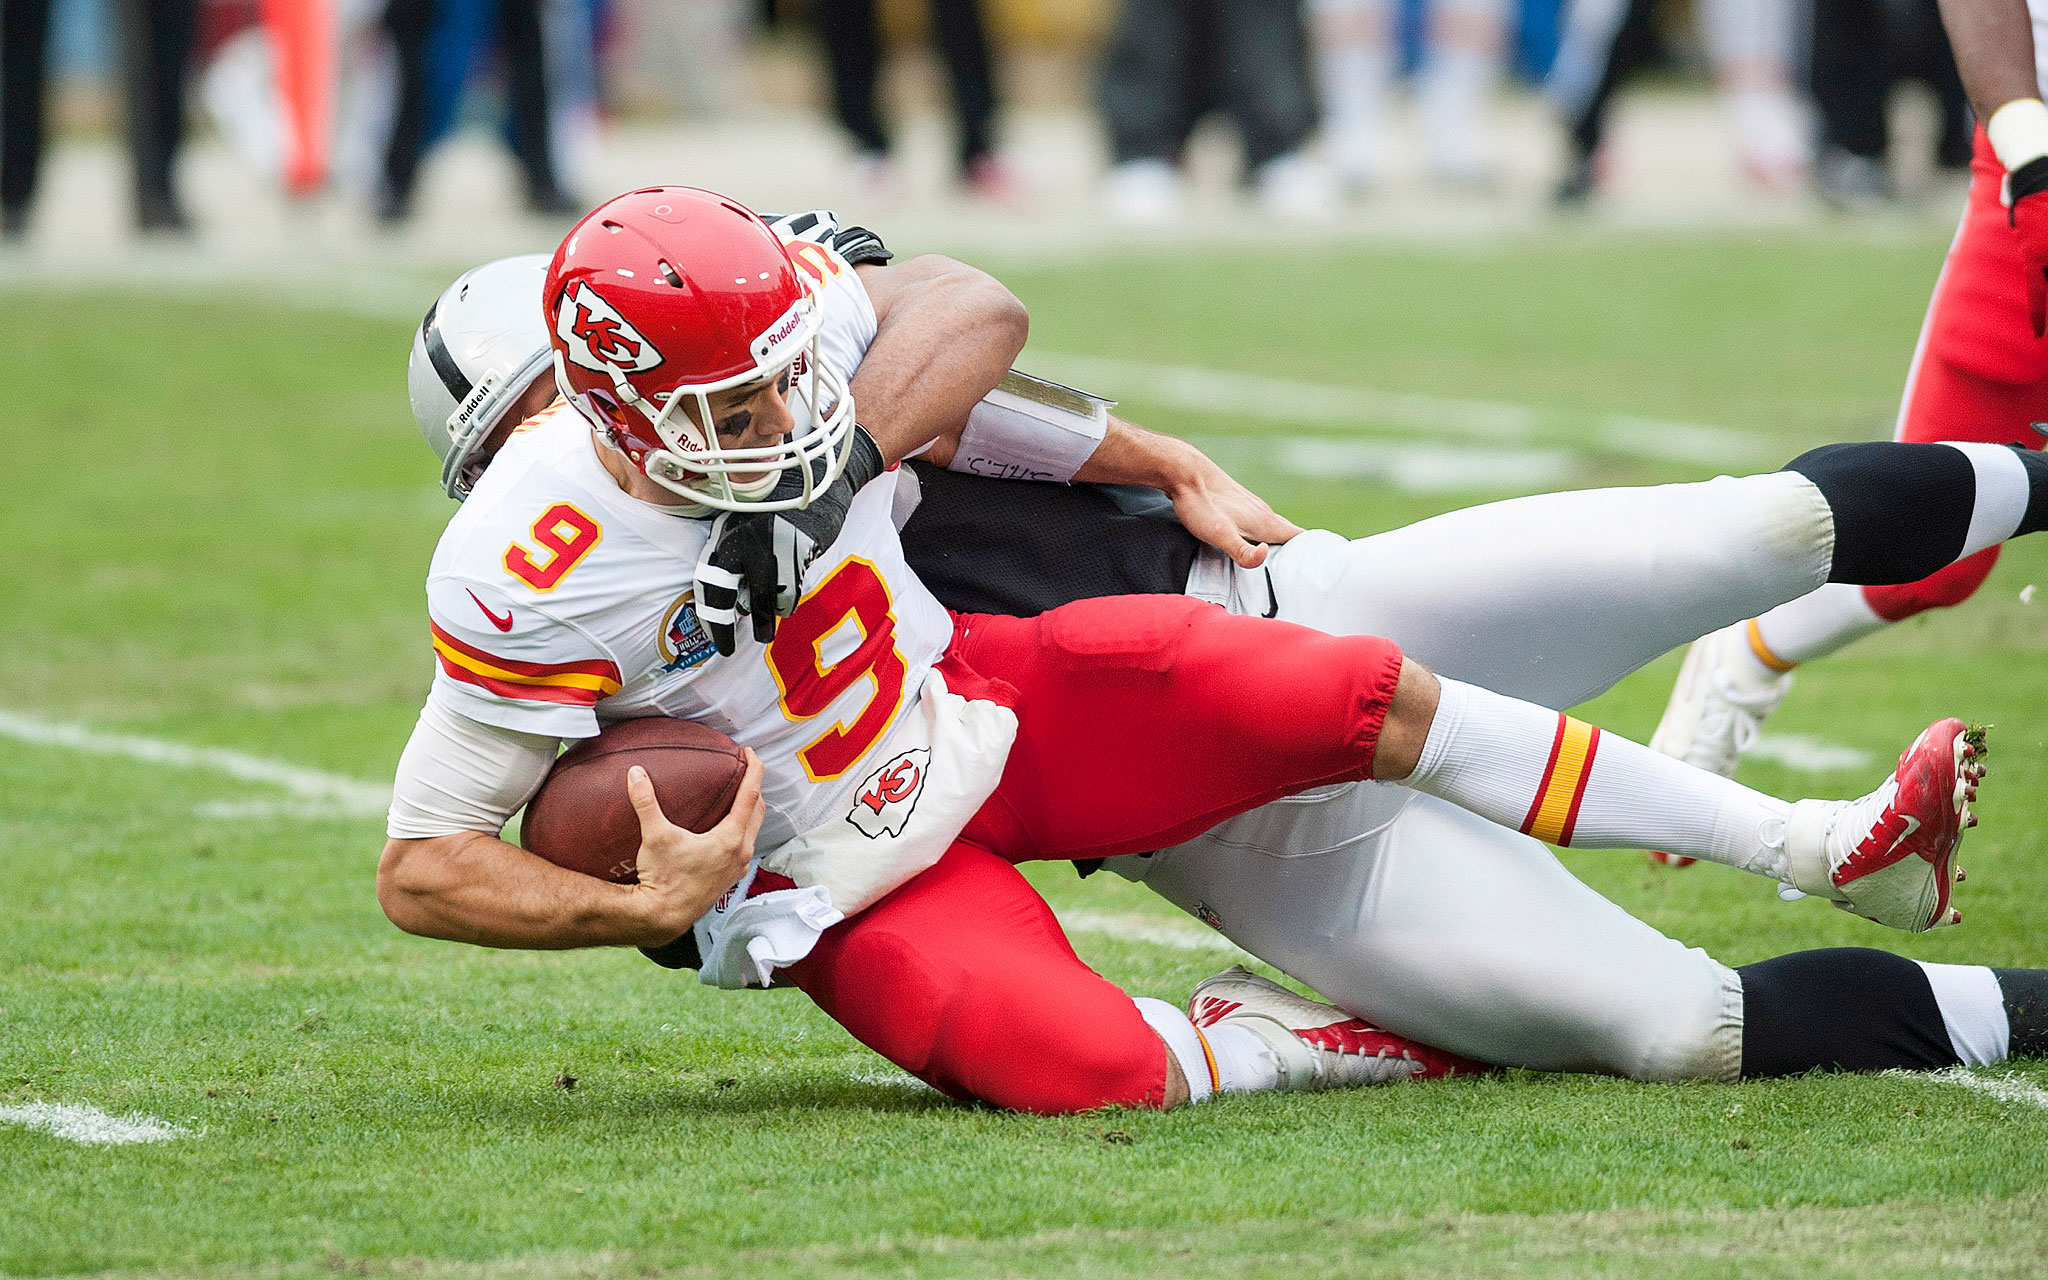 Brady Quinn Chiefs Vs Panthers Not His Day - NFL Week...